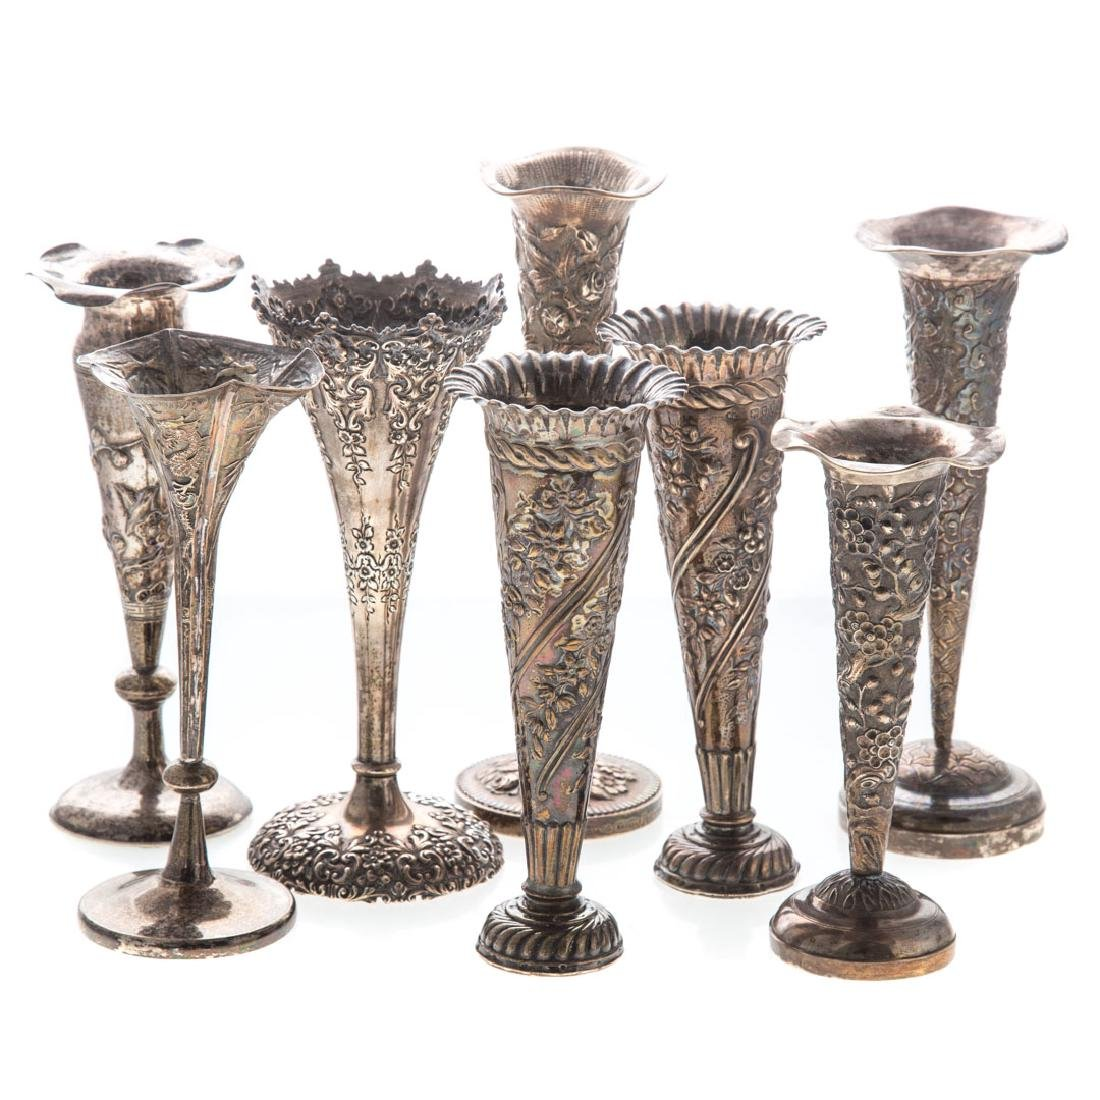 Eight repousse silver bud vases